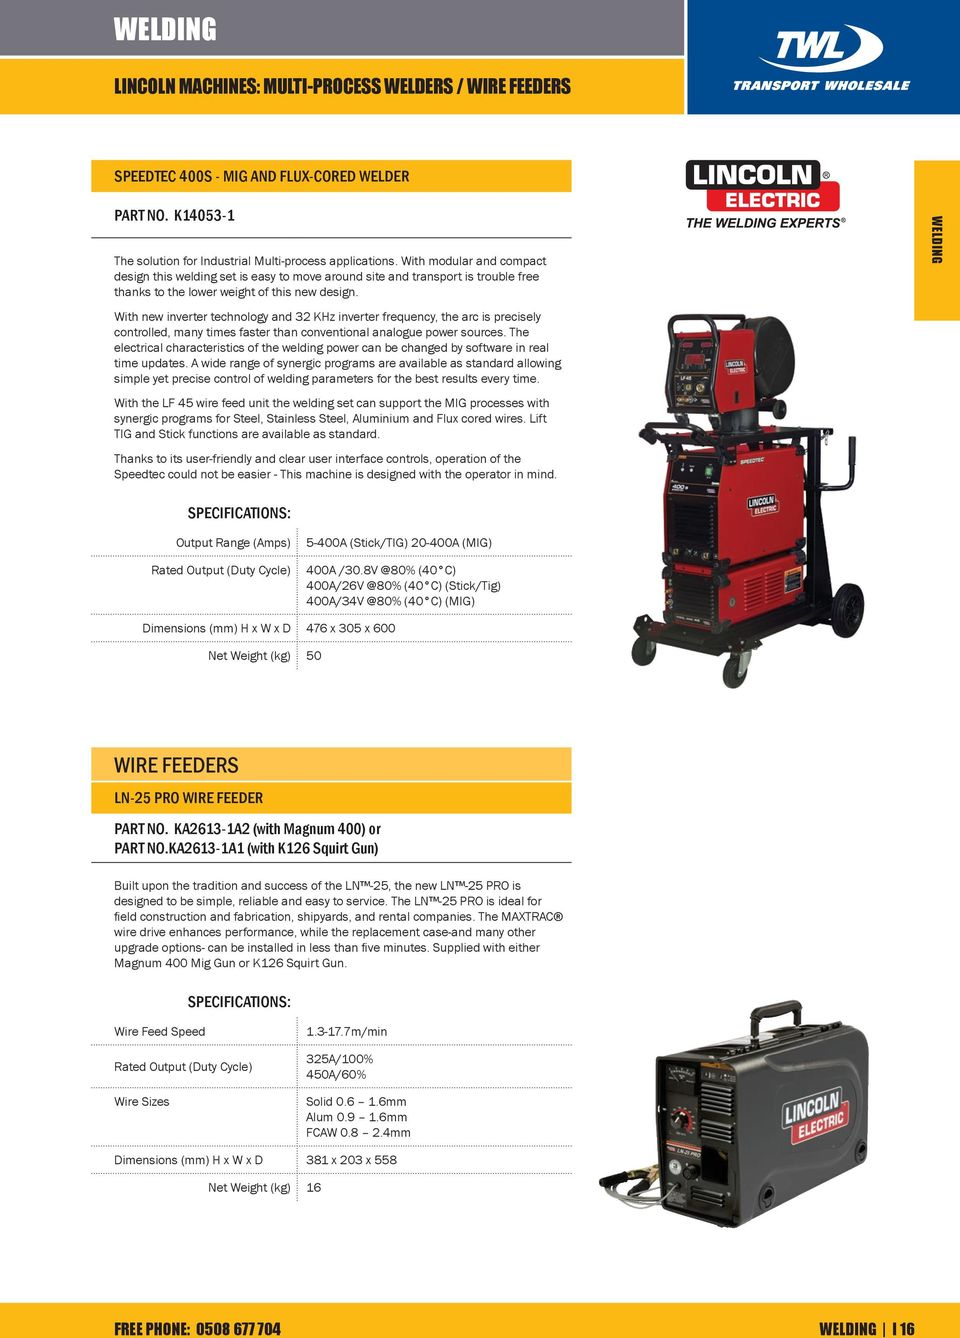 Welding Lincoln Machines Stick Welders Handy 130 Part No K 100sg Wiring Diagram With New Inverter Technology And 32 Khz Frequency The Arc Is Precisely Controlled